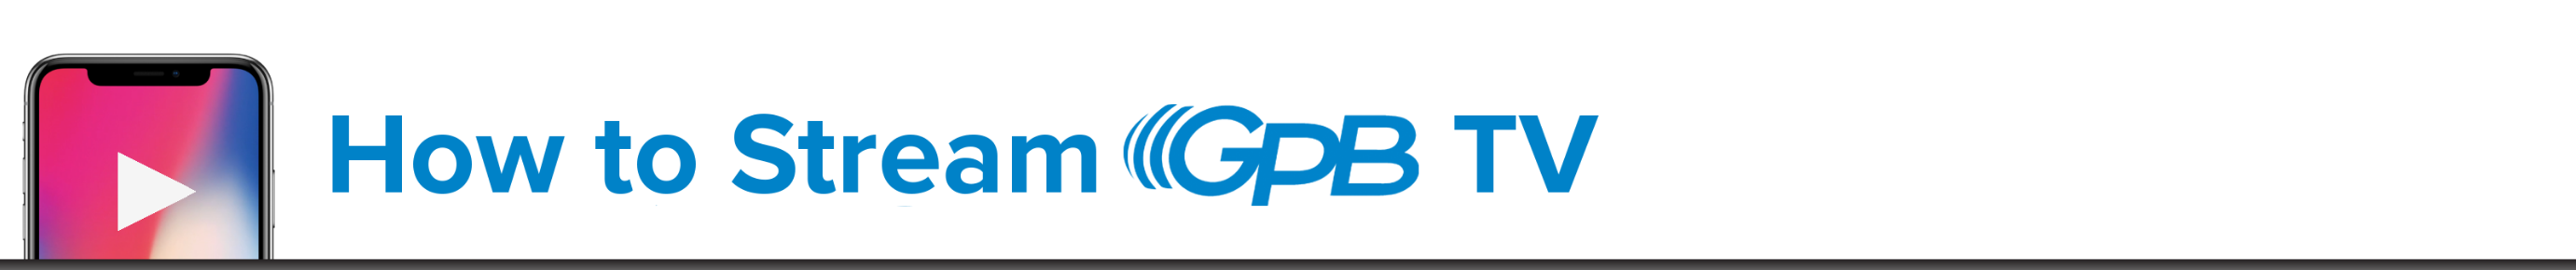 How To Stream GPB design